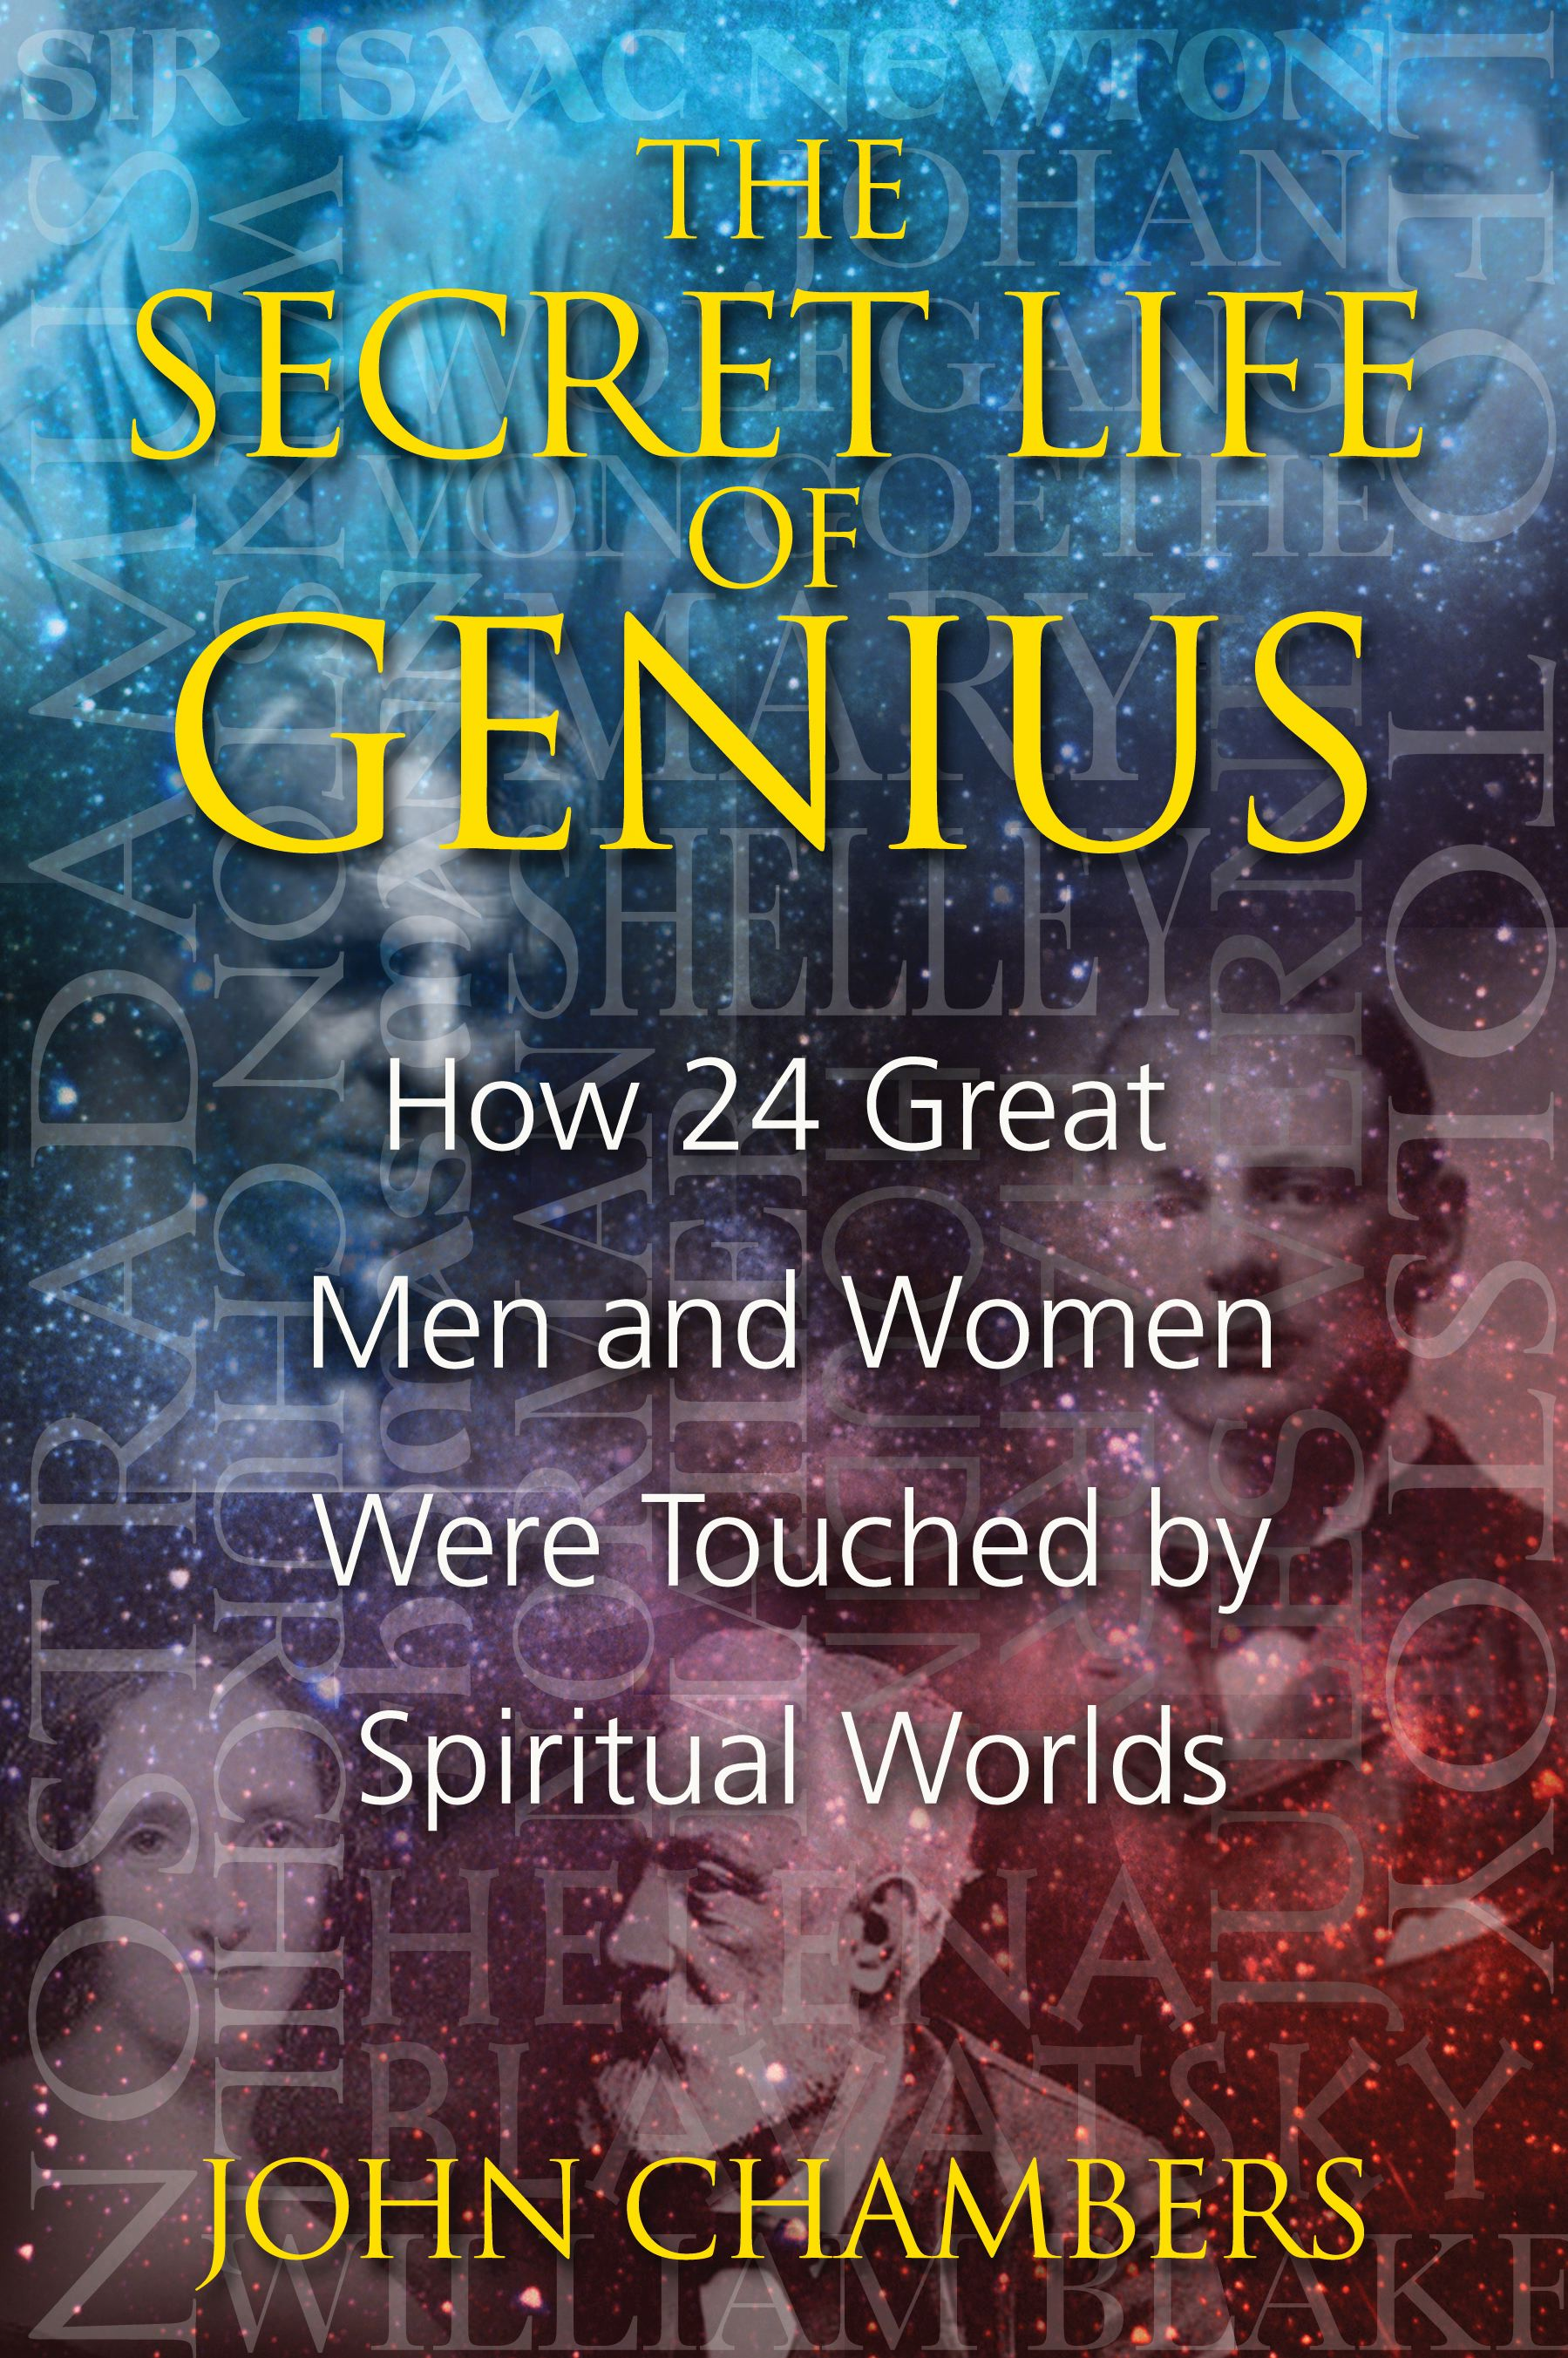 The secret life of genius 9781594772726 hr